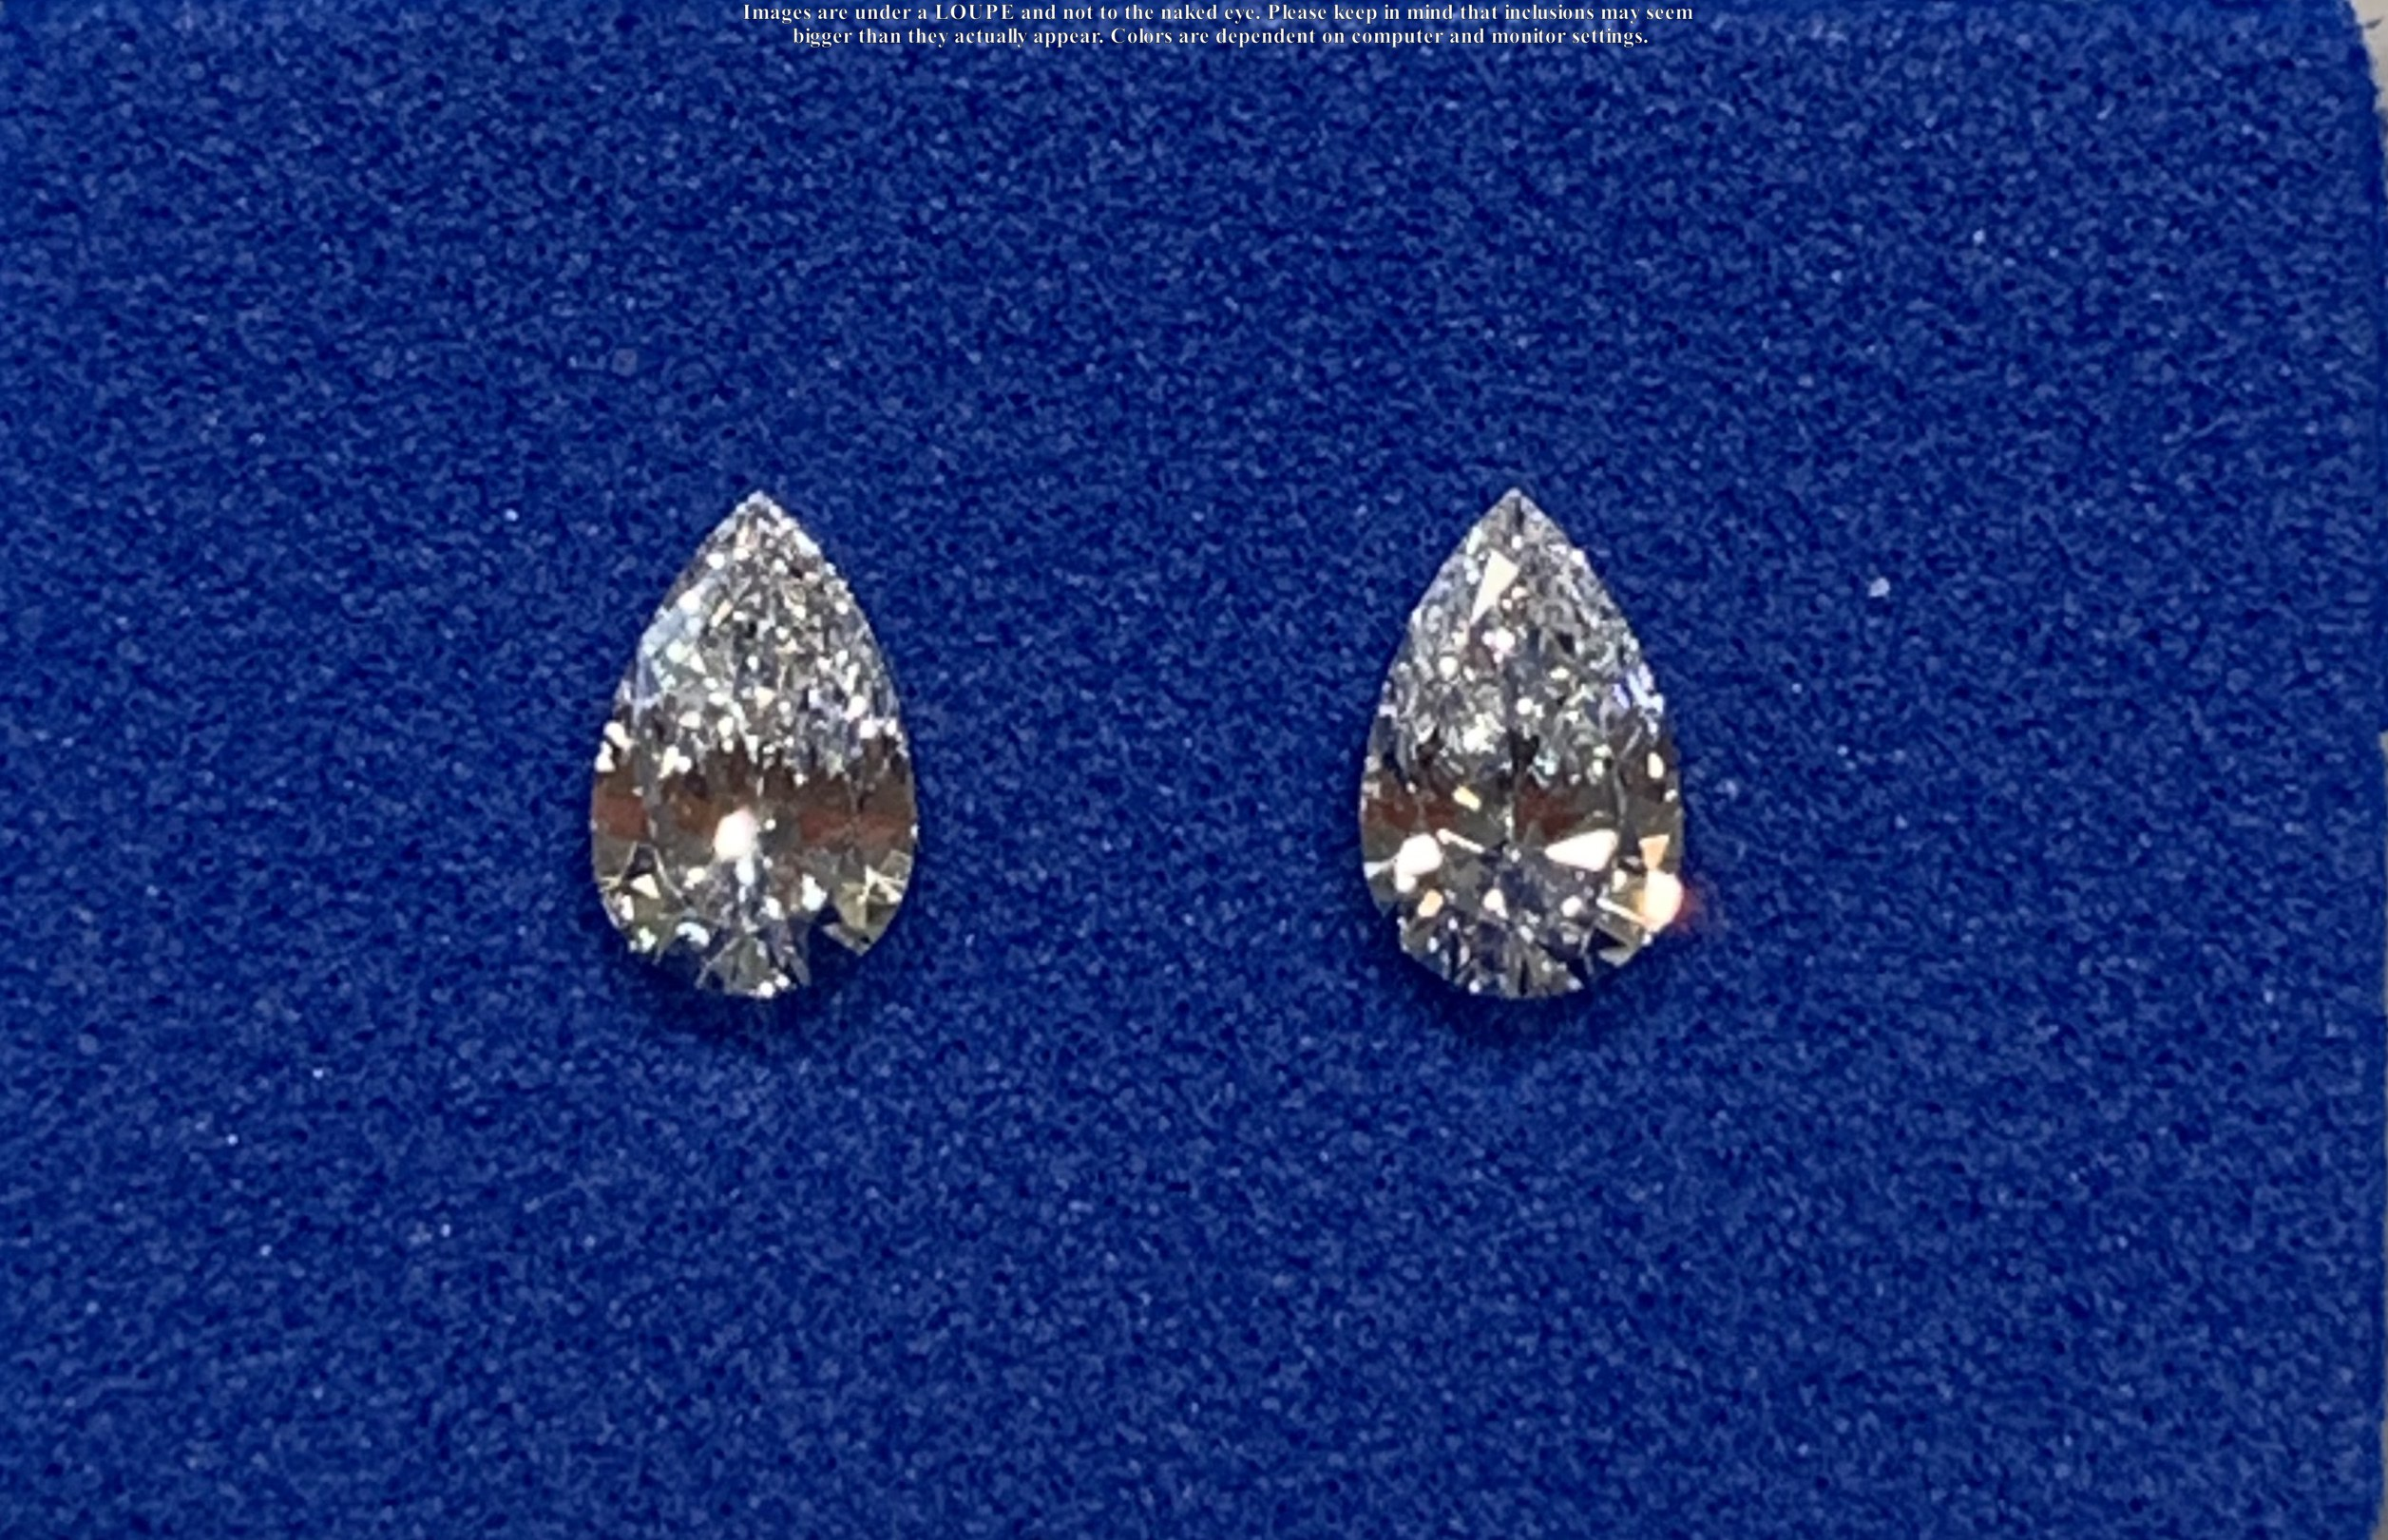 Gumer & Co Jewelry - Diamond Image - .01227